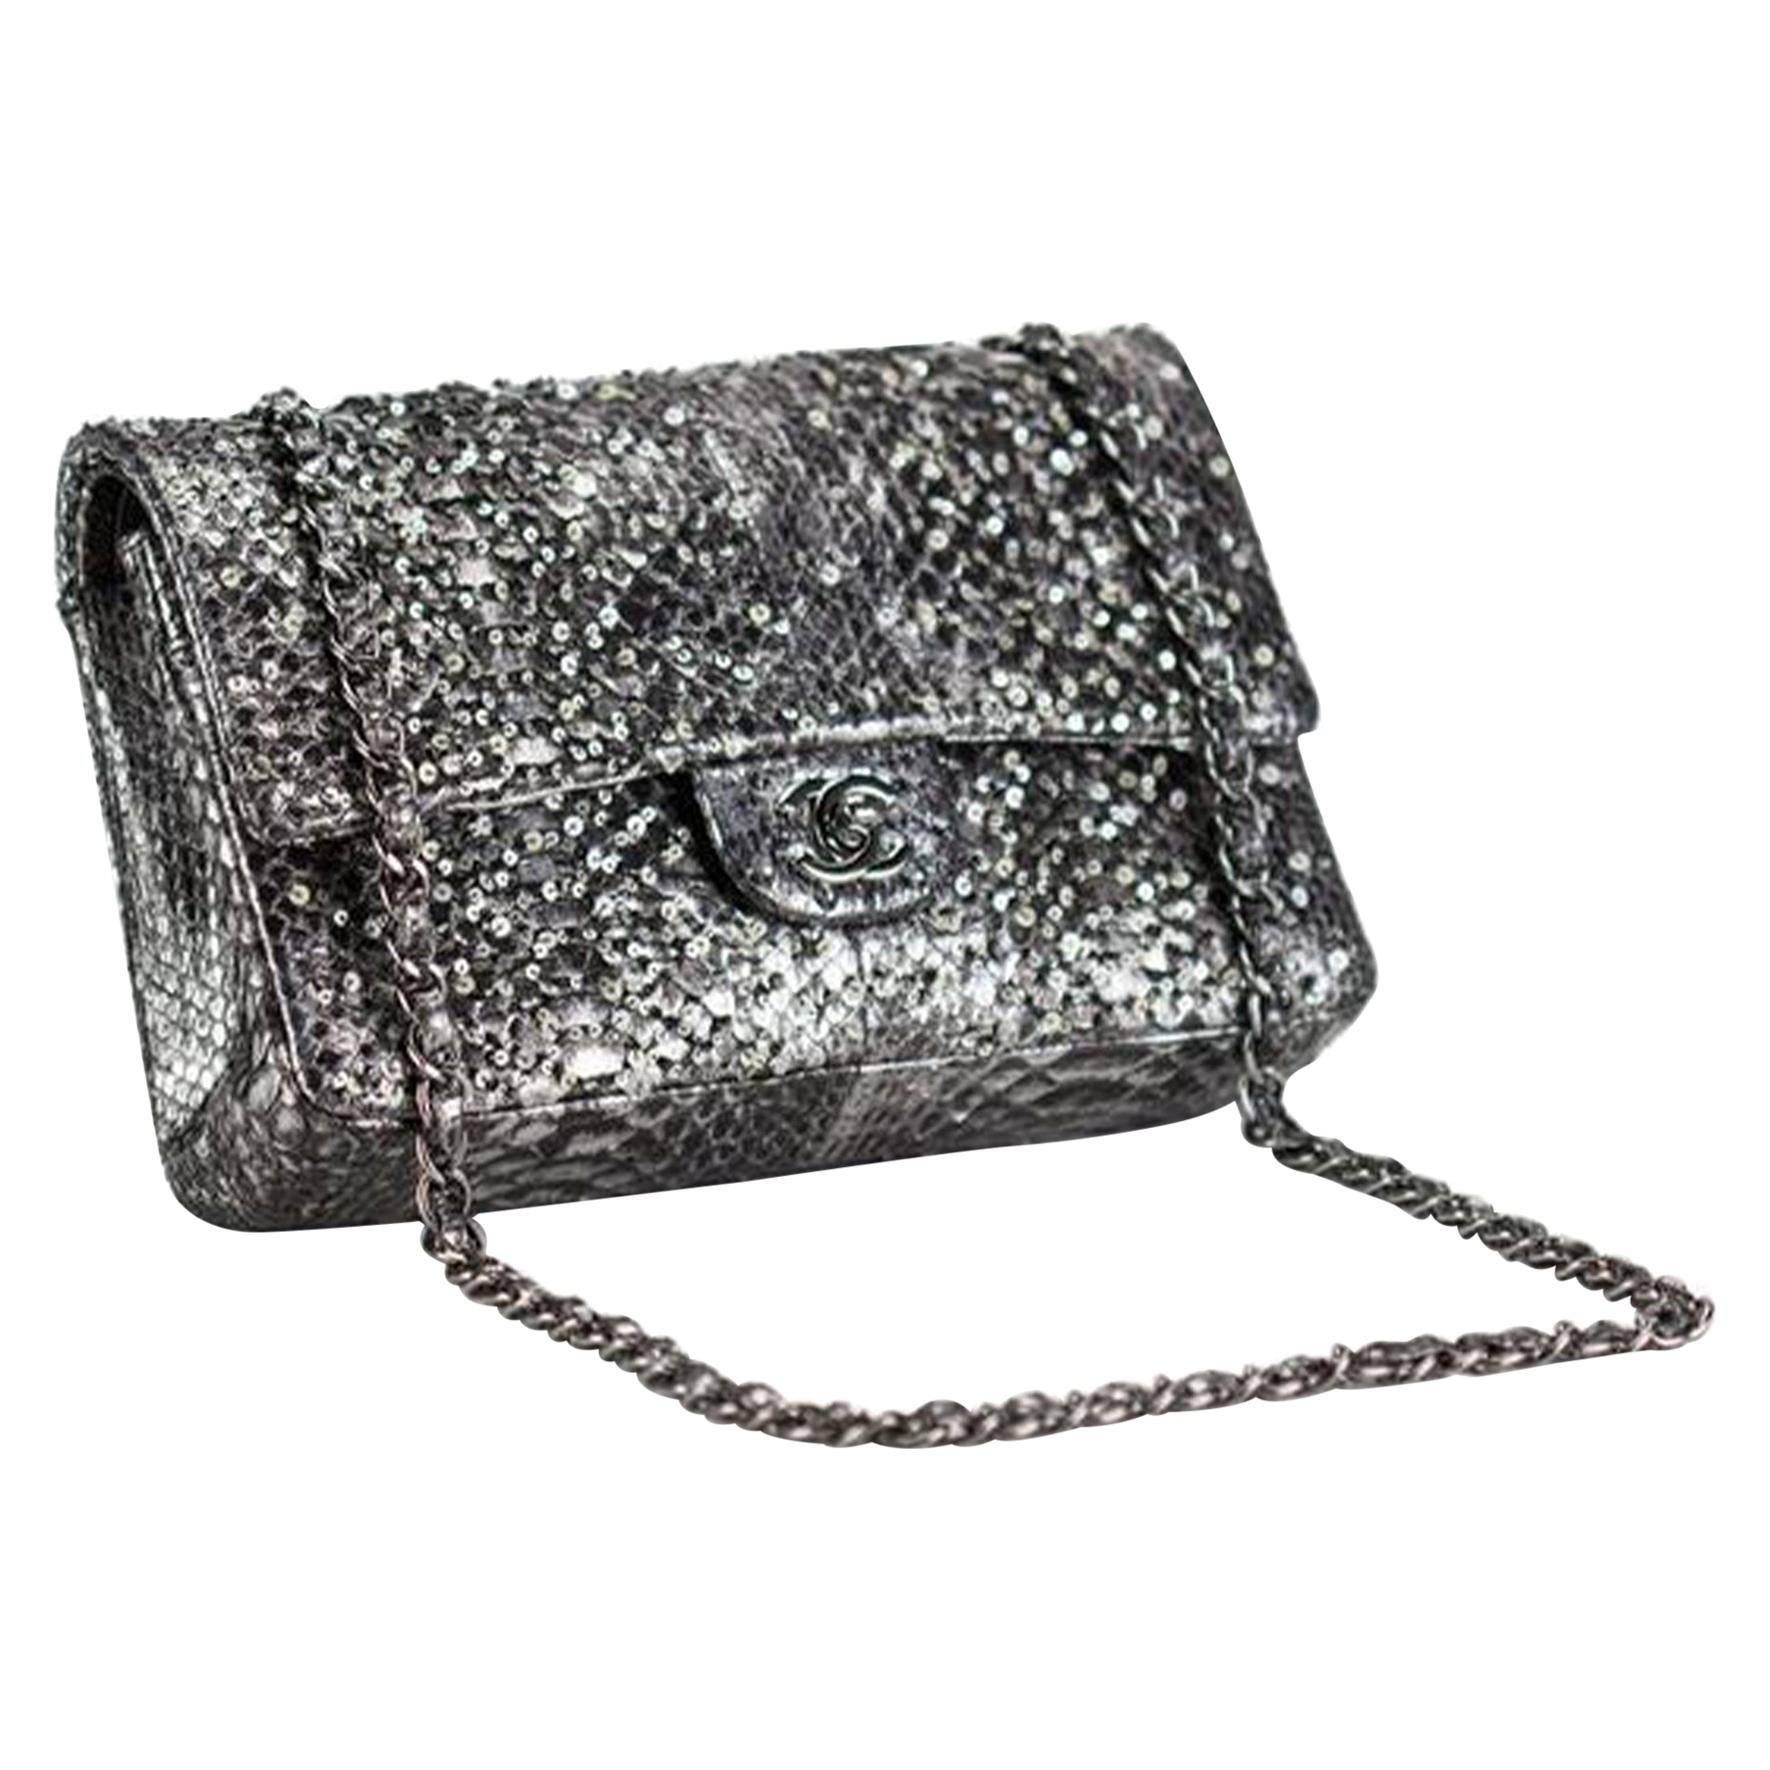 Chanel Classic Flap Exotic Limited Edition Metallic Grey Python Shoulder Bag